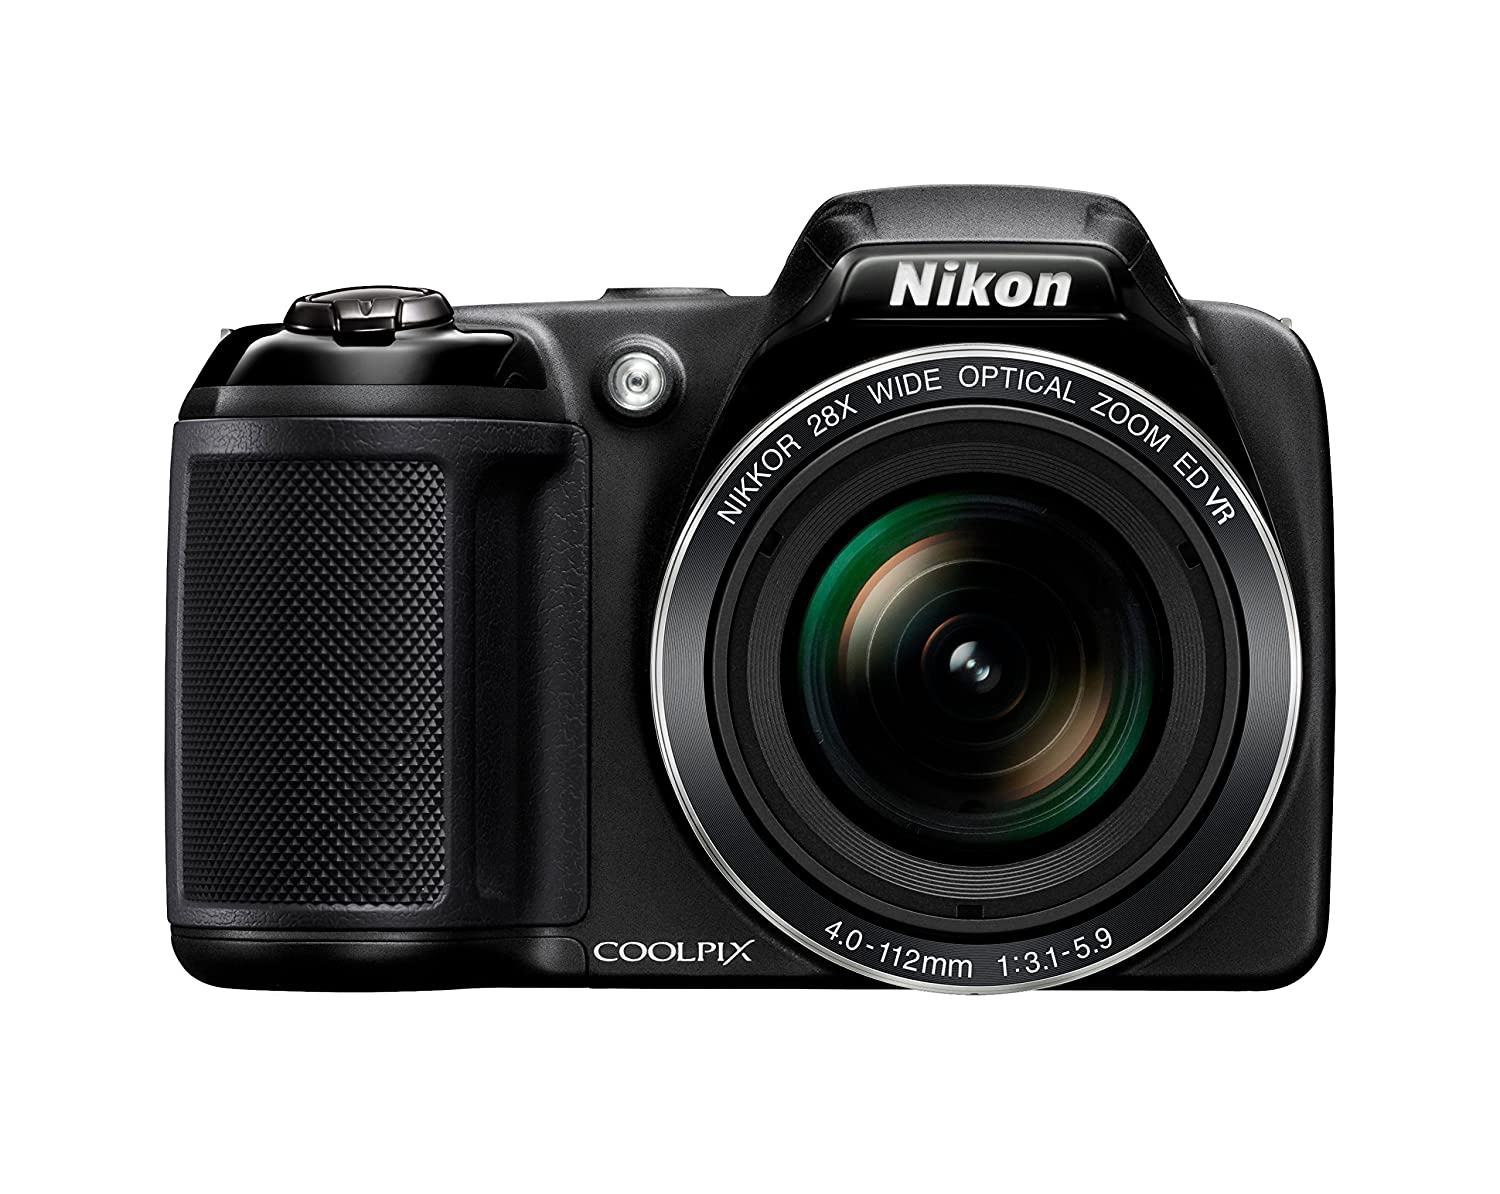 Nikon Coolpix L340 Camera - Black (20 MP, 28x Optical Zoom) 3-Inch LCD (Certified Refurbished)